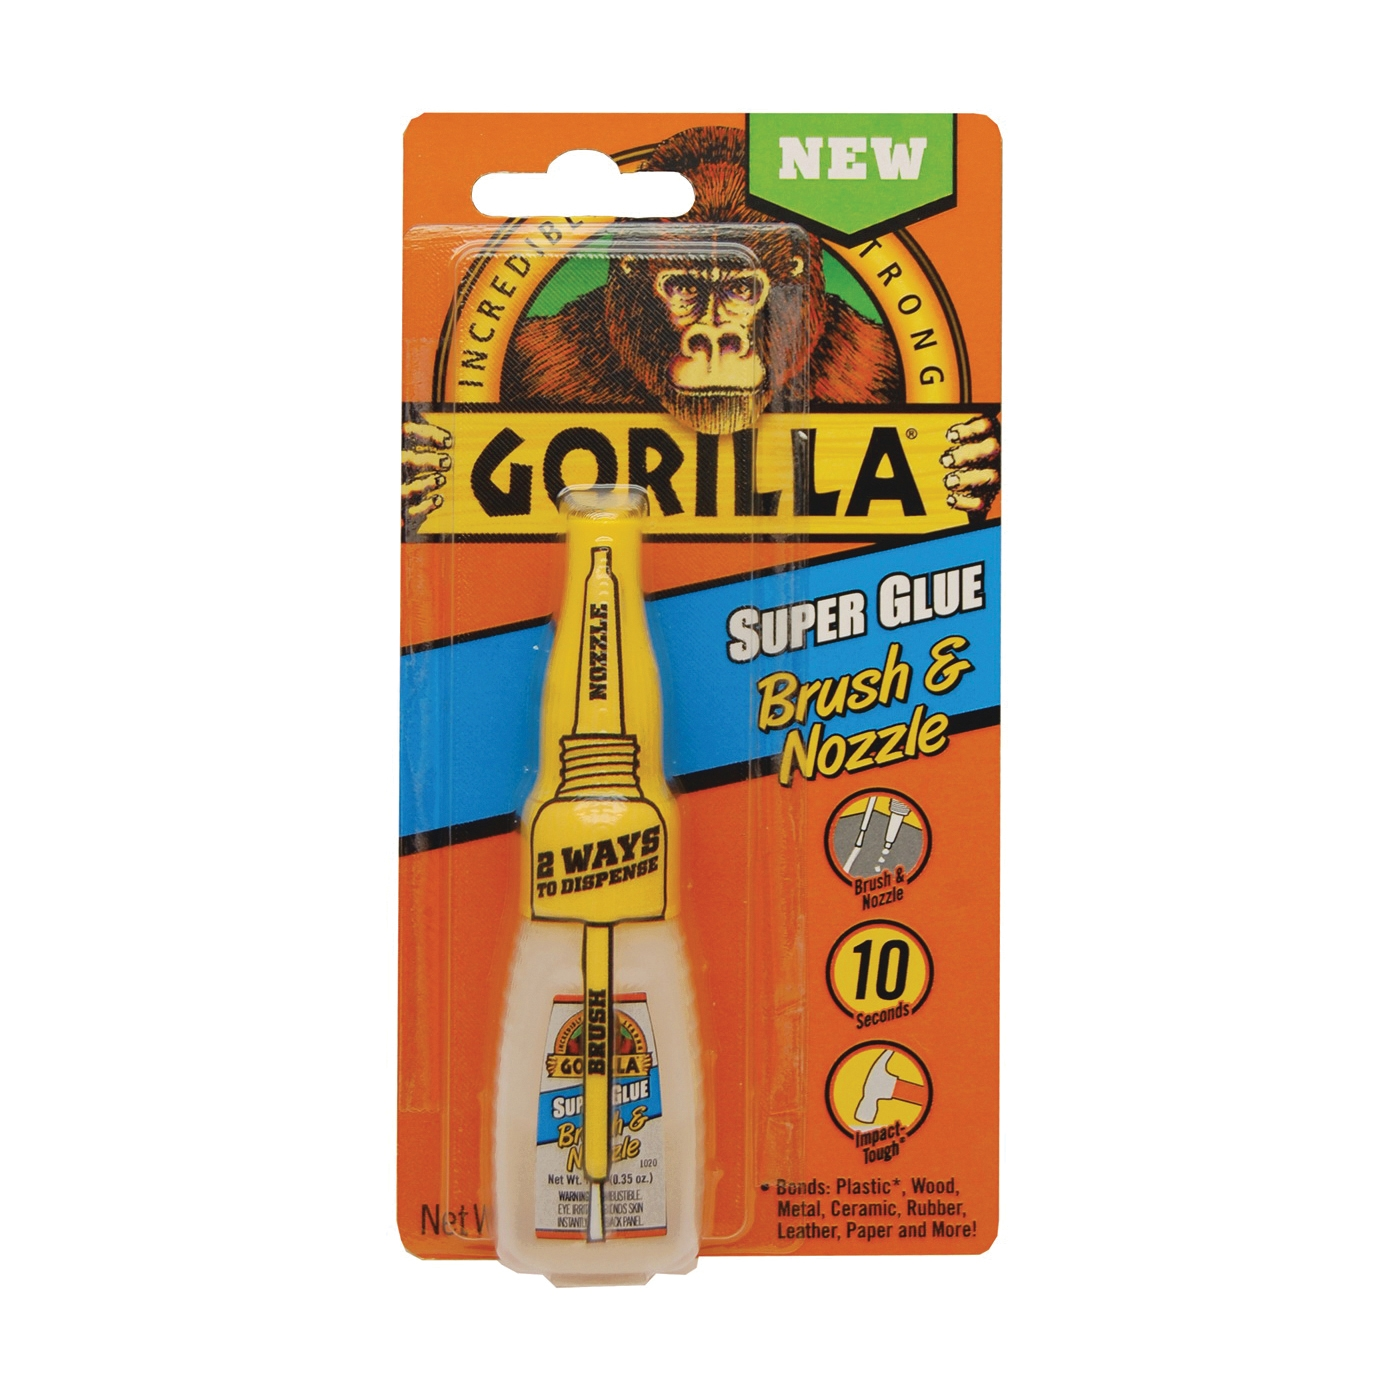 Picture of Gorilla 7500102 Super Glue Brush and Nozzle, Liquid, Irritating, Straw/White Water, 10 g Package, Bottle